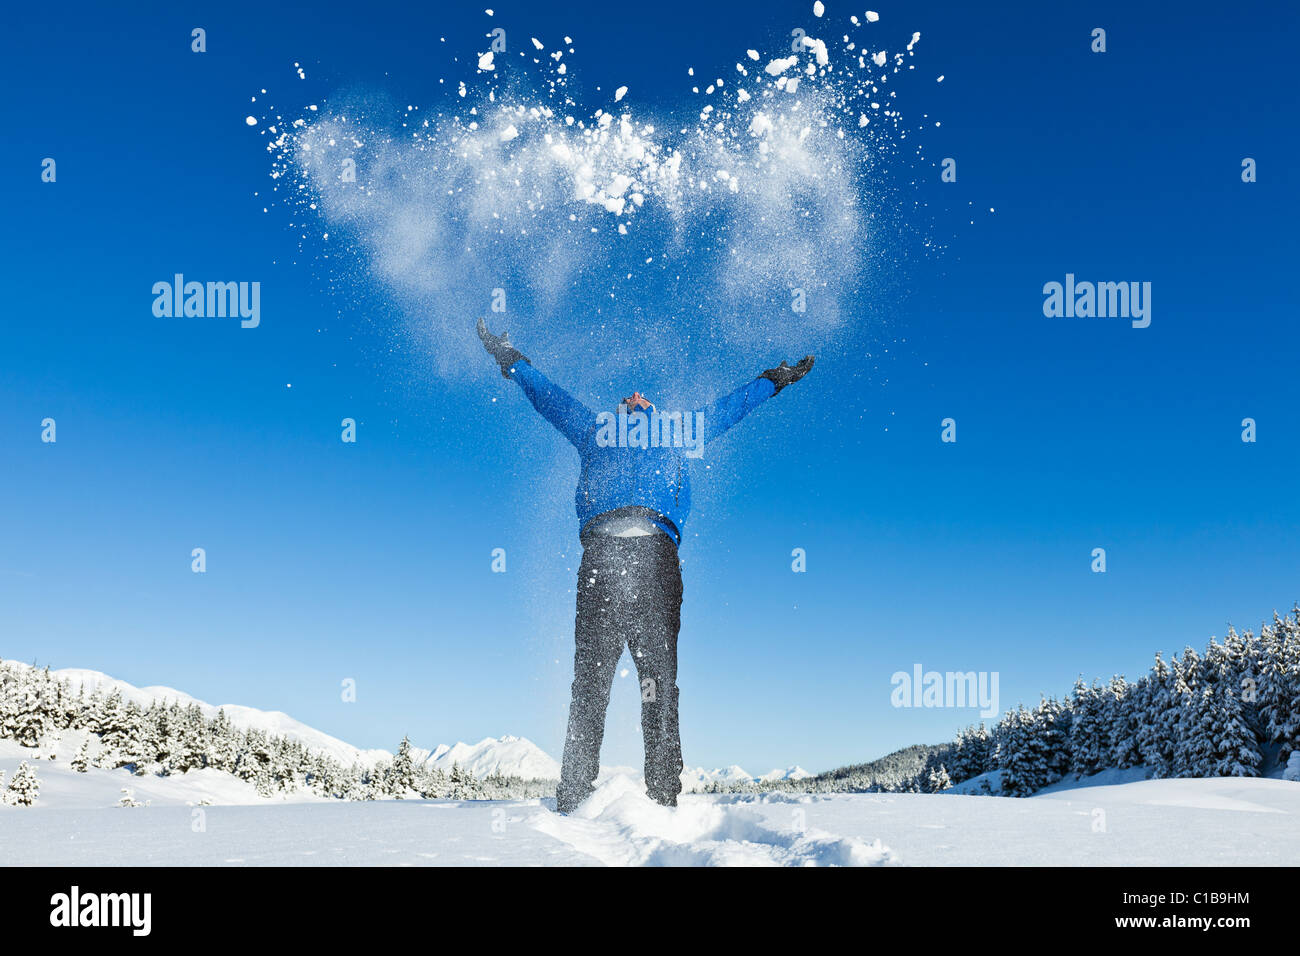 A male hiker on snowshoes in Alaska throws up snow into the air expressing joy at the sunny day and mountain scenery. Stock Photo